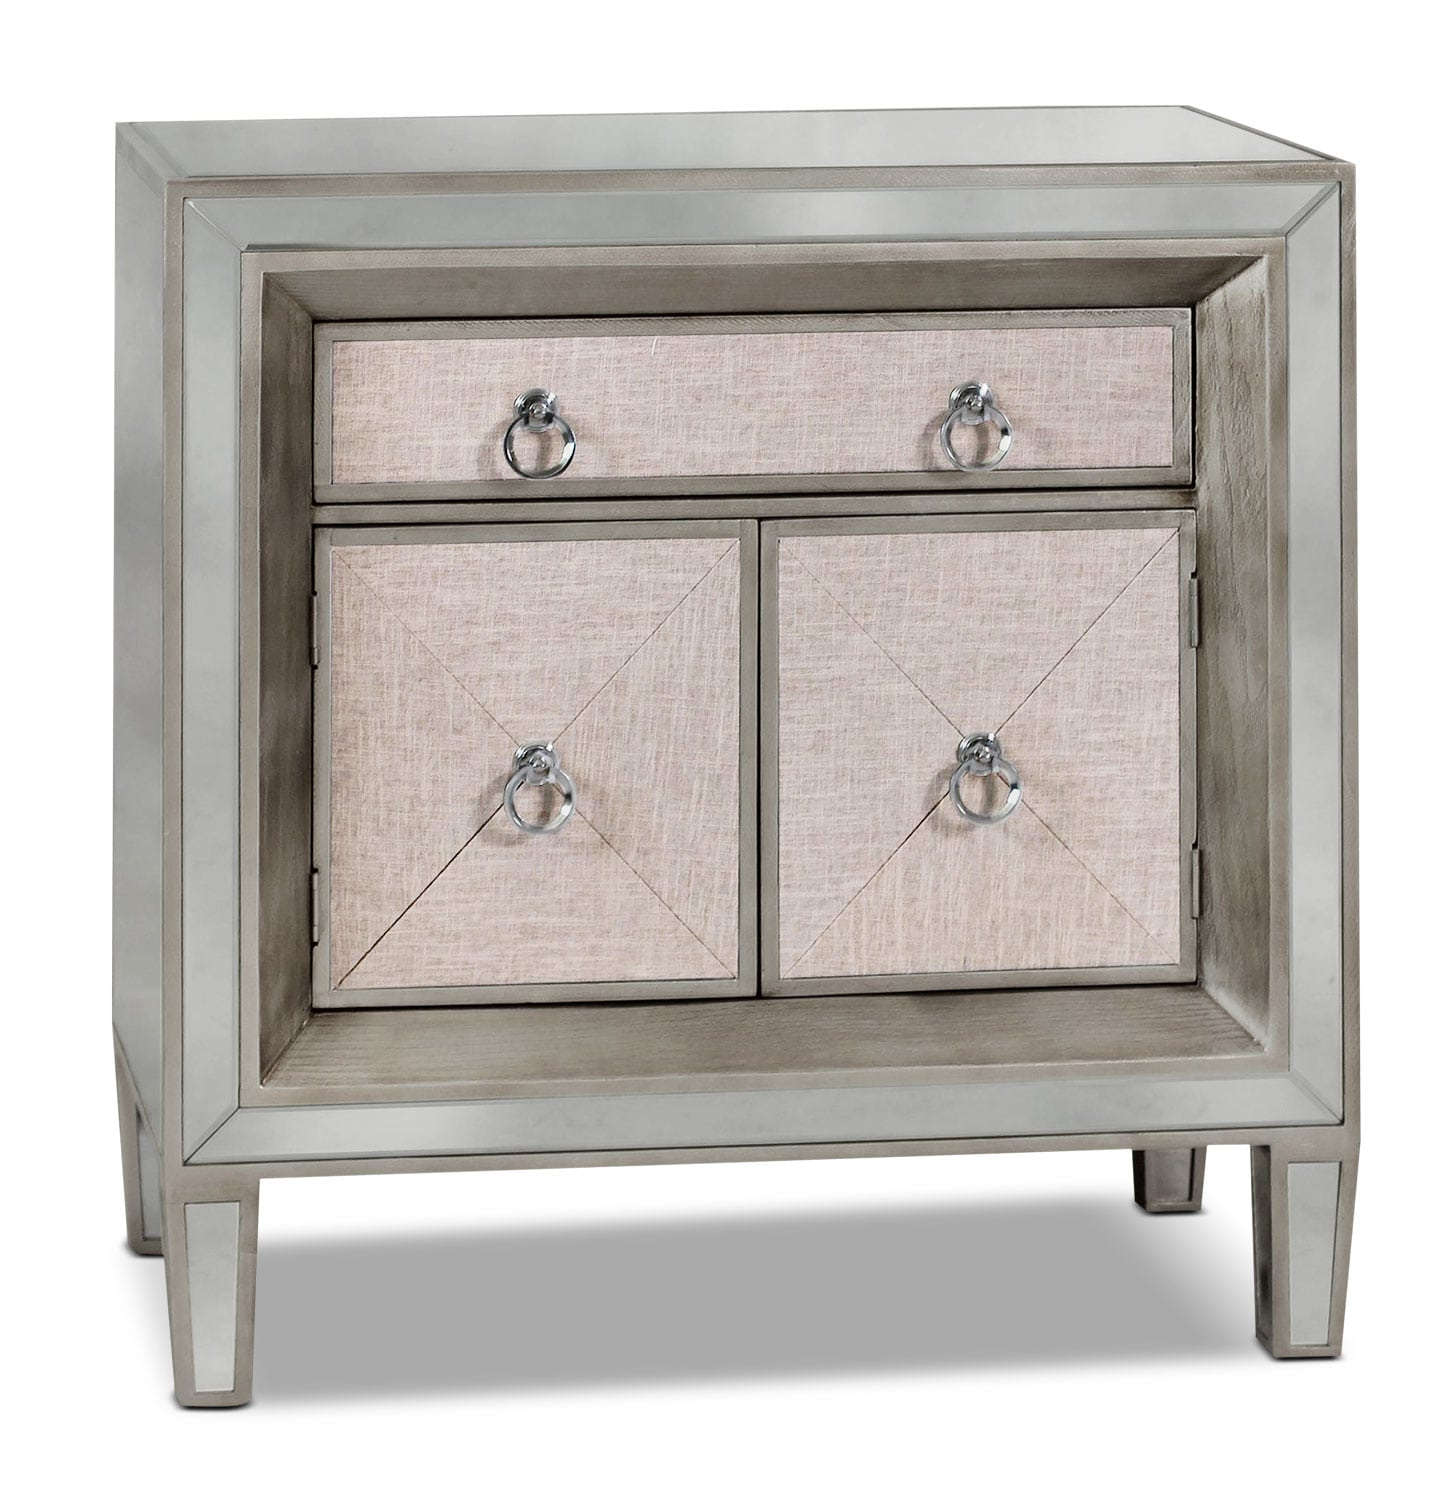 "Enna 32"" Accent Cabinet"